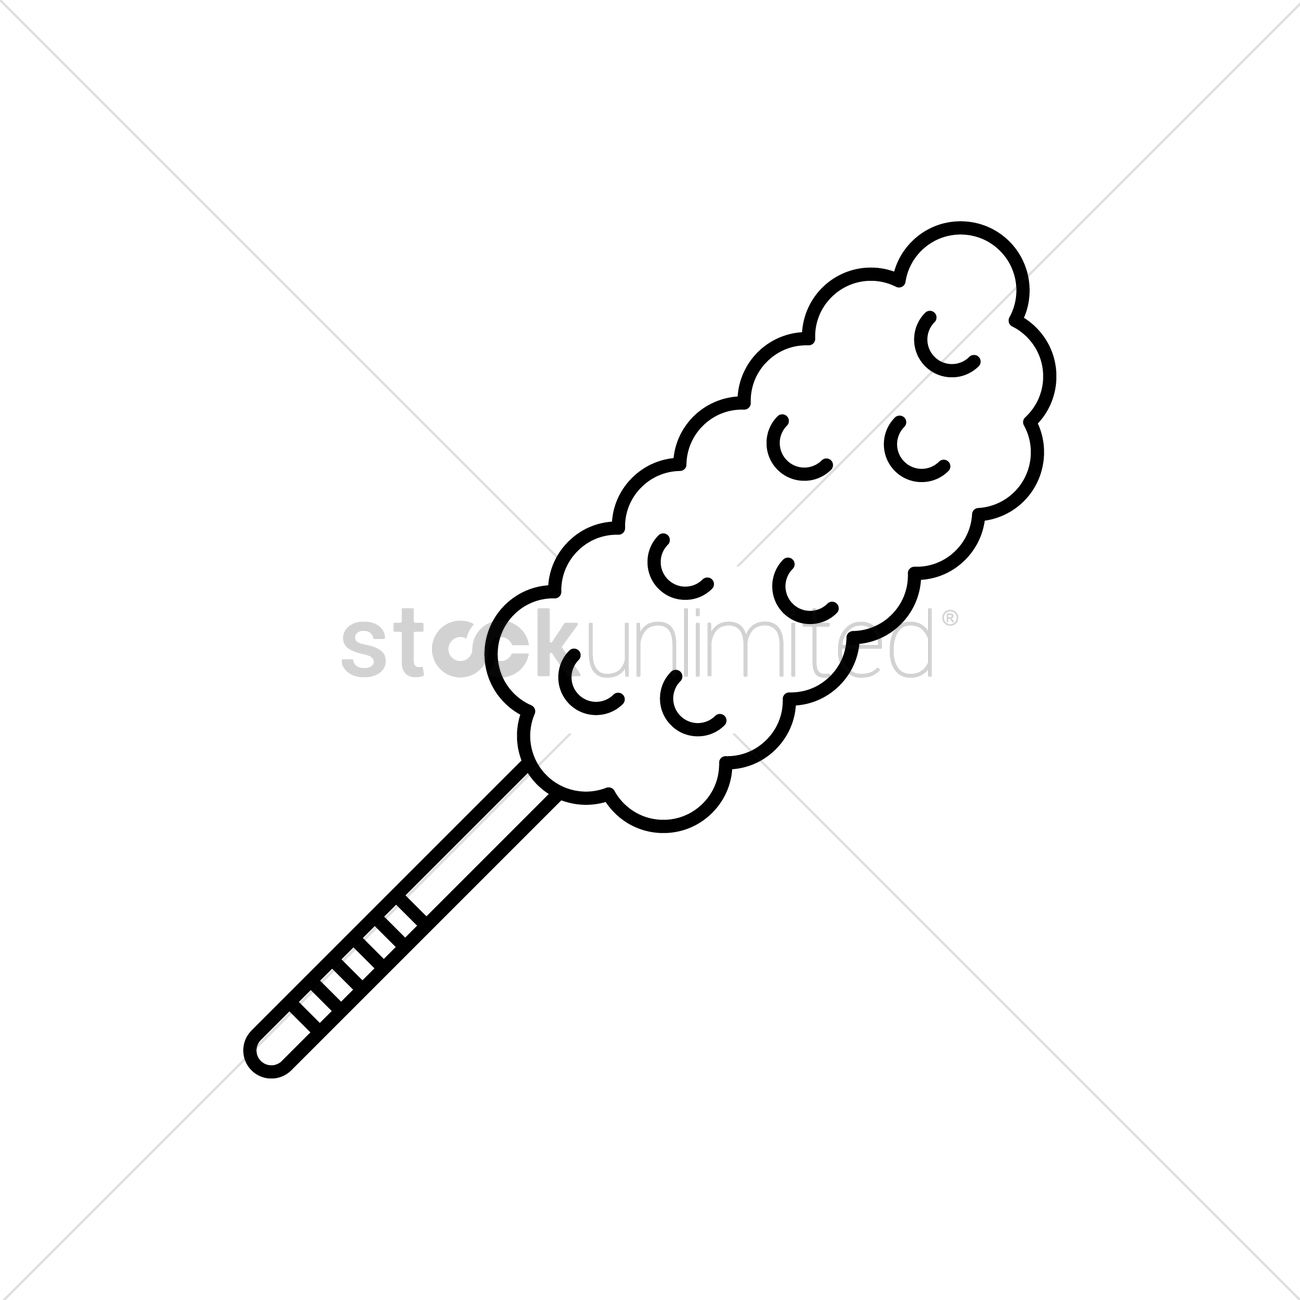 feather duster vector image 1998374 stockunlimited rh stockunlimited com feather duster clipart Pink Feather Duster Clip Art